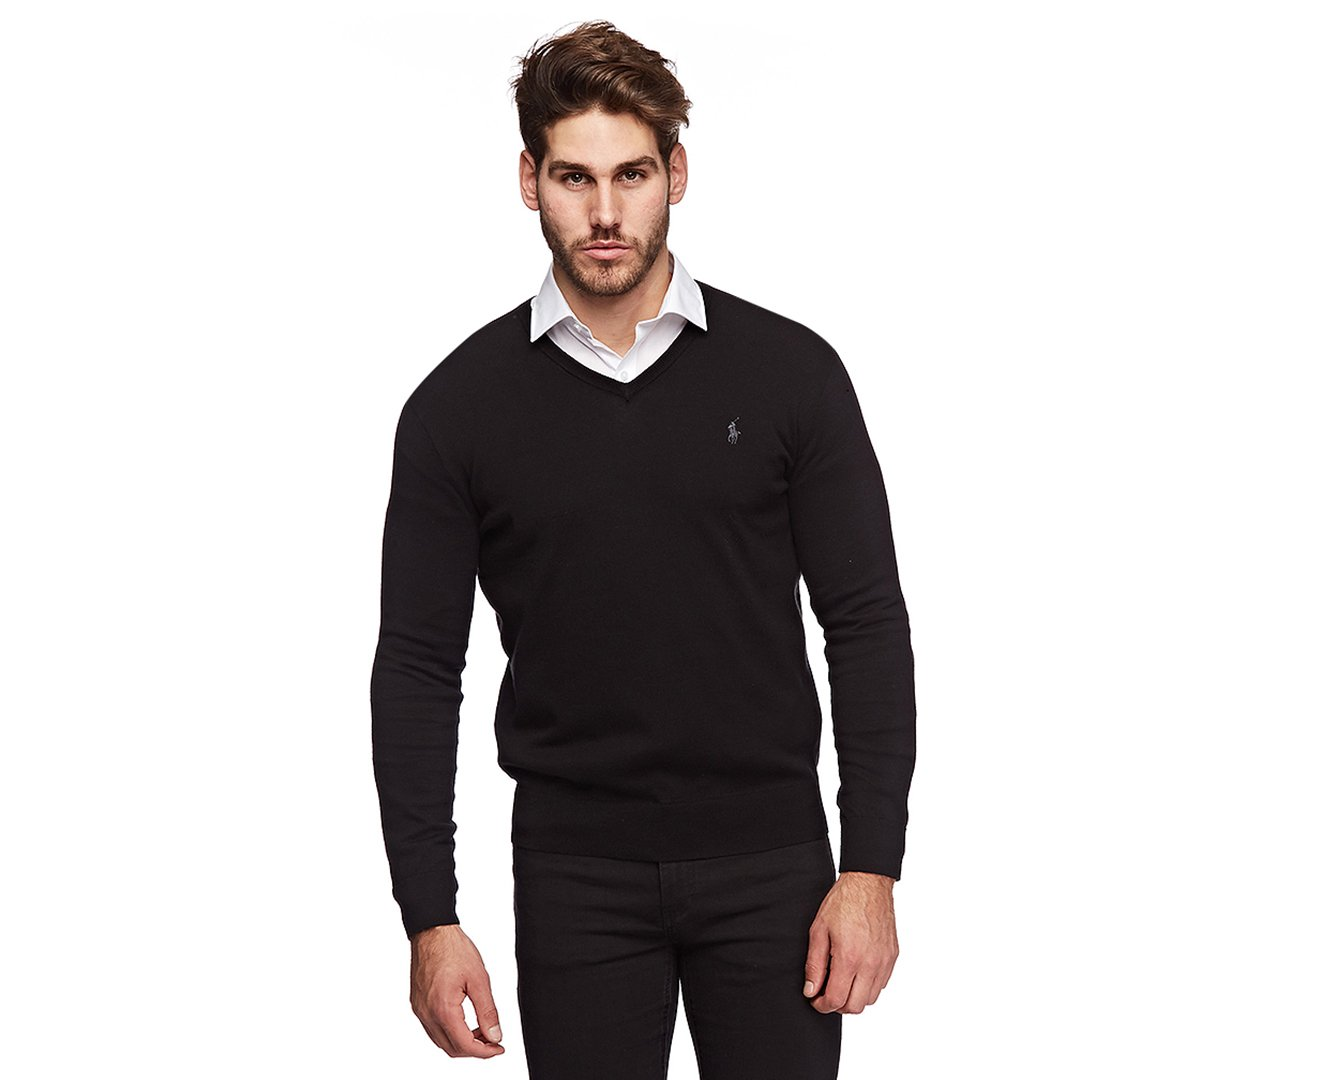 Polo Ralph Lauren Mens Pima Cotton V-Neck Sweater (Blackgrypny , XL)